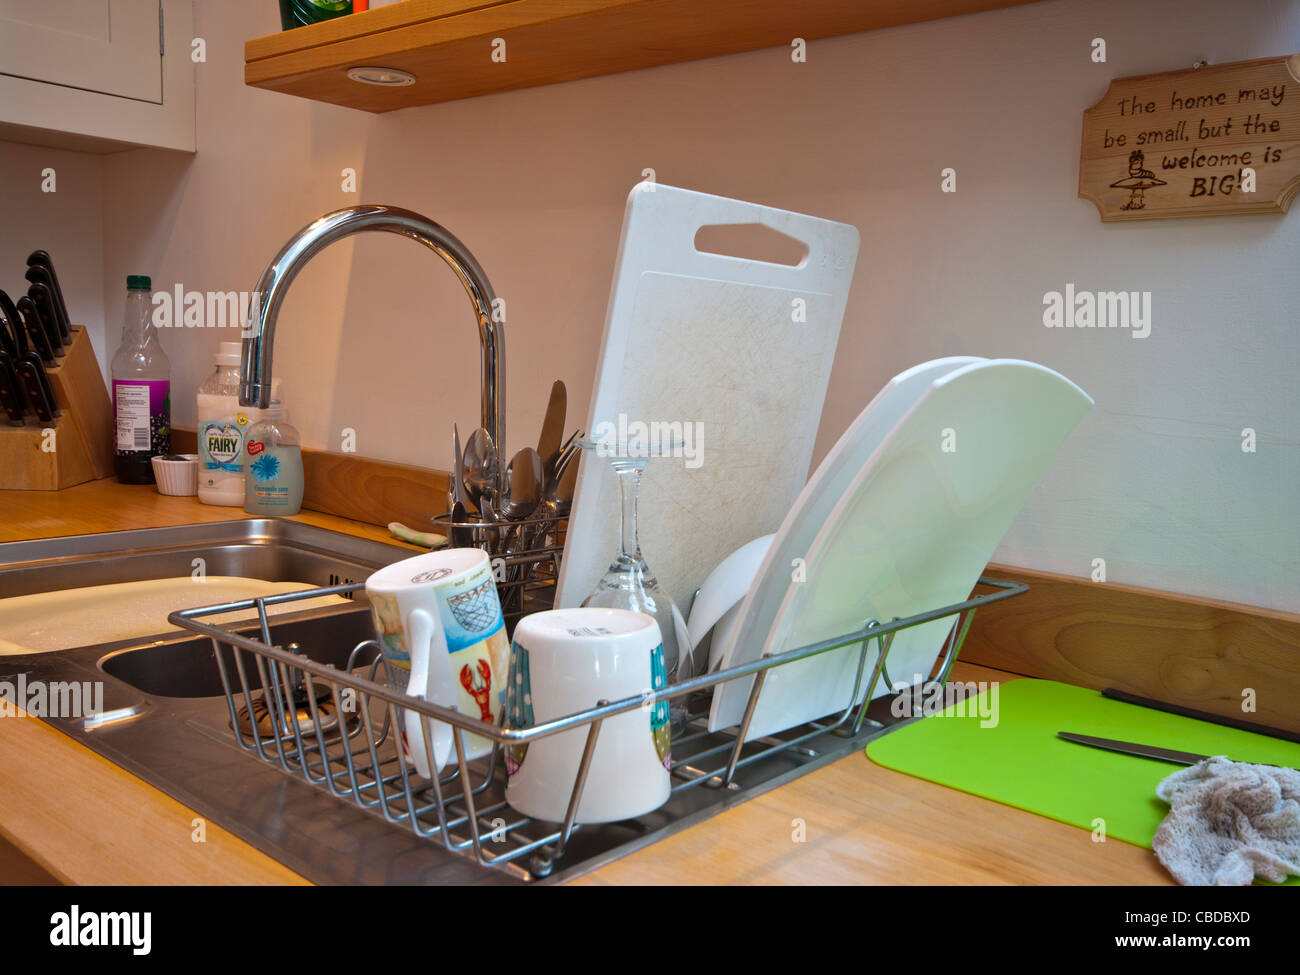 Kitchen Sink And Draining Board With Washing Up - Stock Image